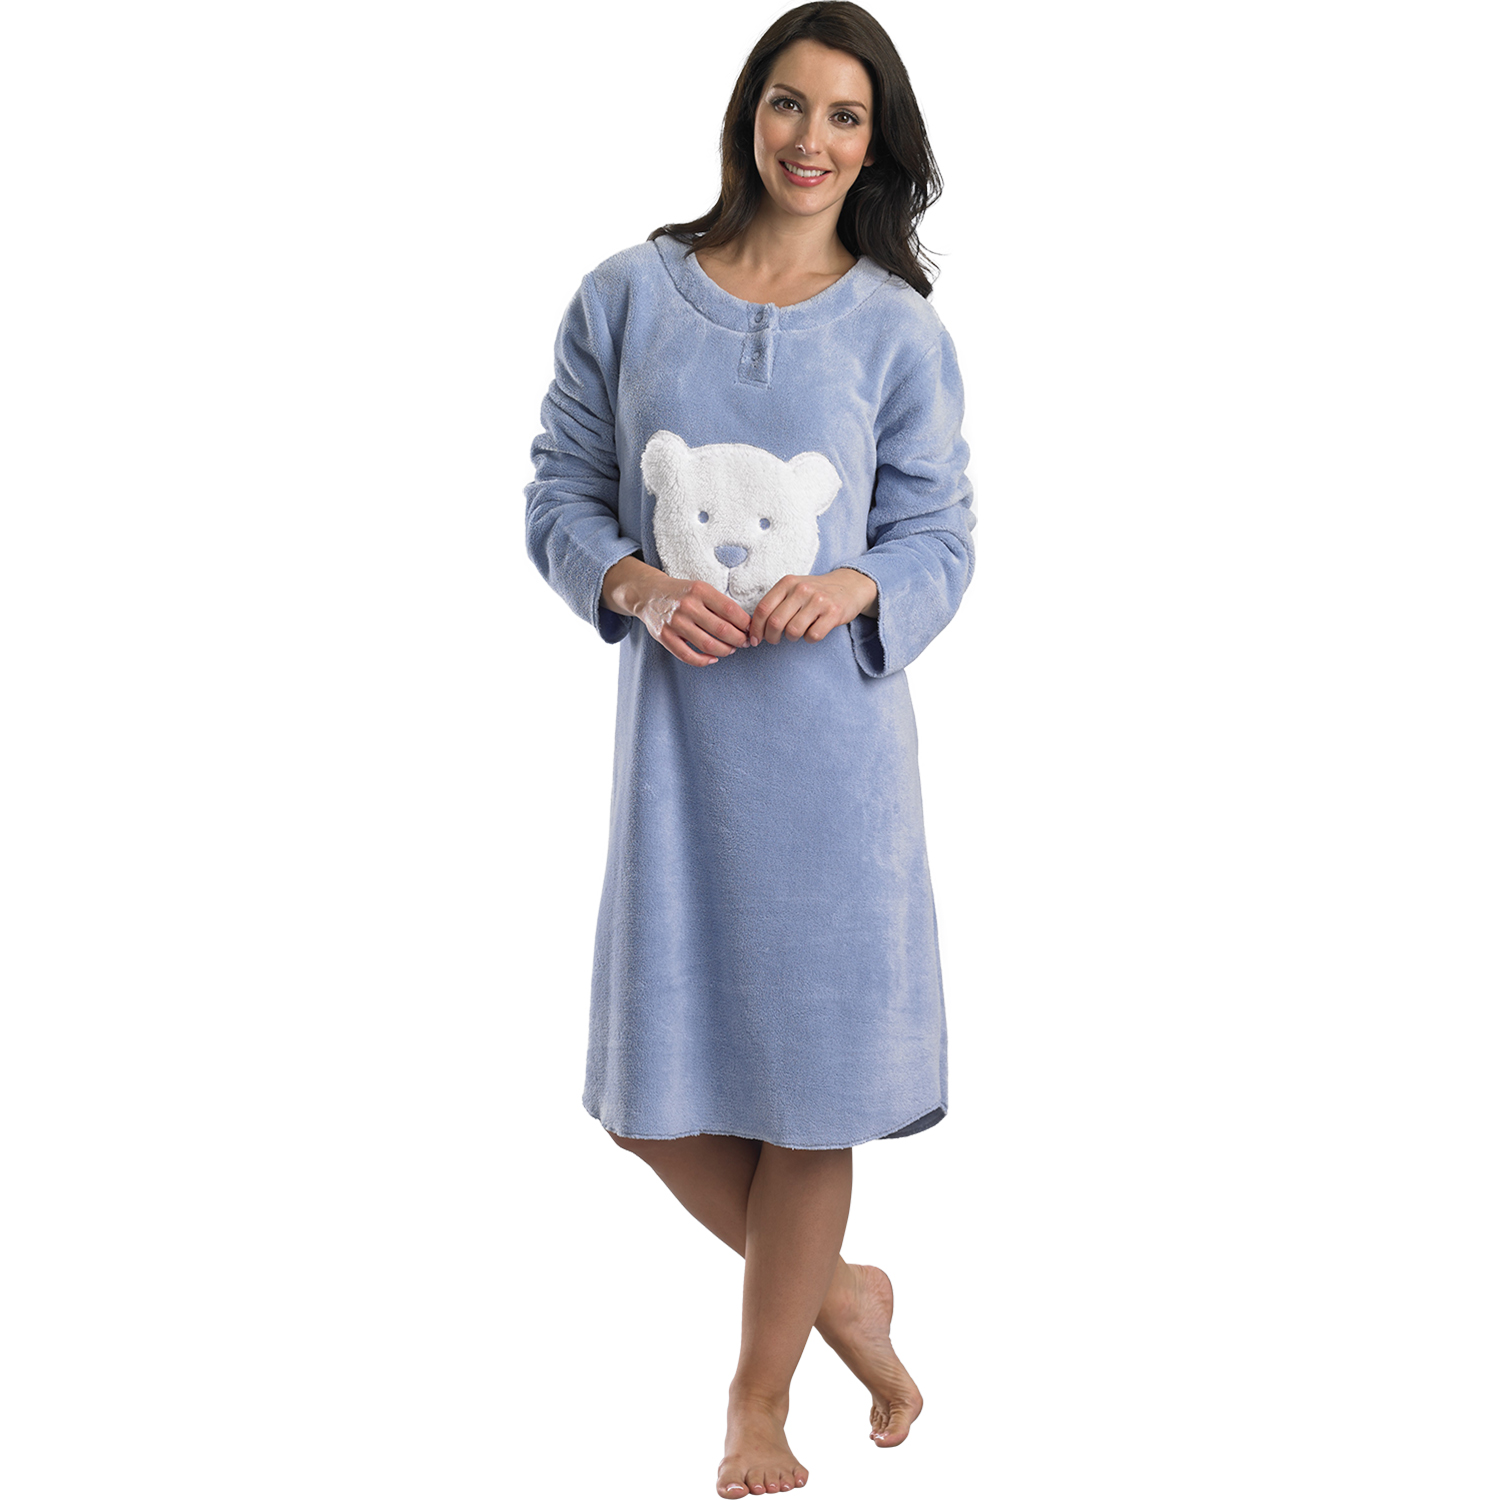 Womens Fleece Solild Robe, Long Hooded Bathrobe. from $ 49 99 Prime. out of 5 stars goodmansam. Women's Simplicity Stlye Bridesmaid Wedding Party Kimono Robes, Short. Women's Cotton Nightgown Casual Nights Sleepwear Short Sleeves Print Sleepshirt. from $ .